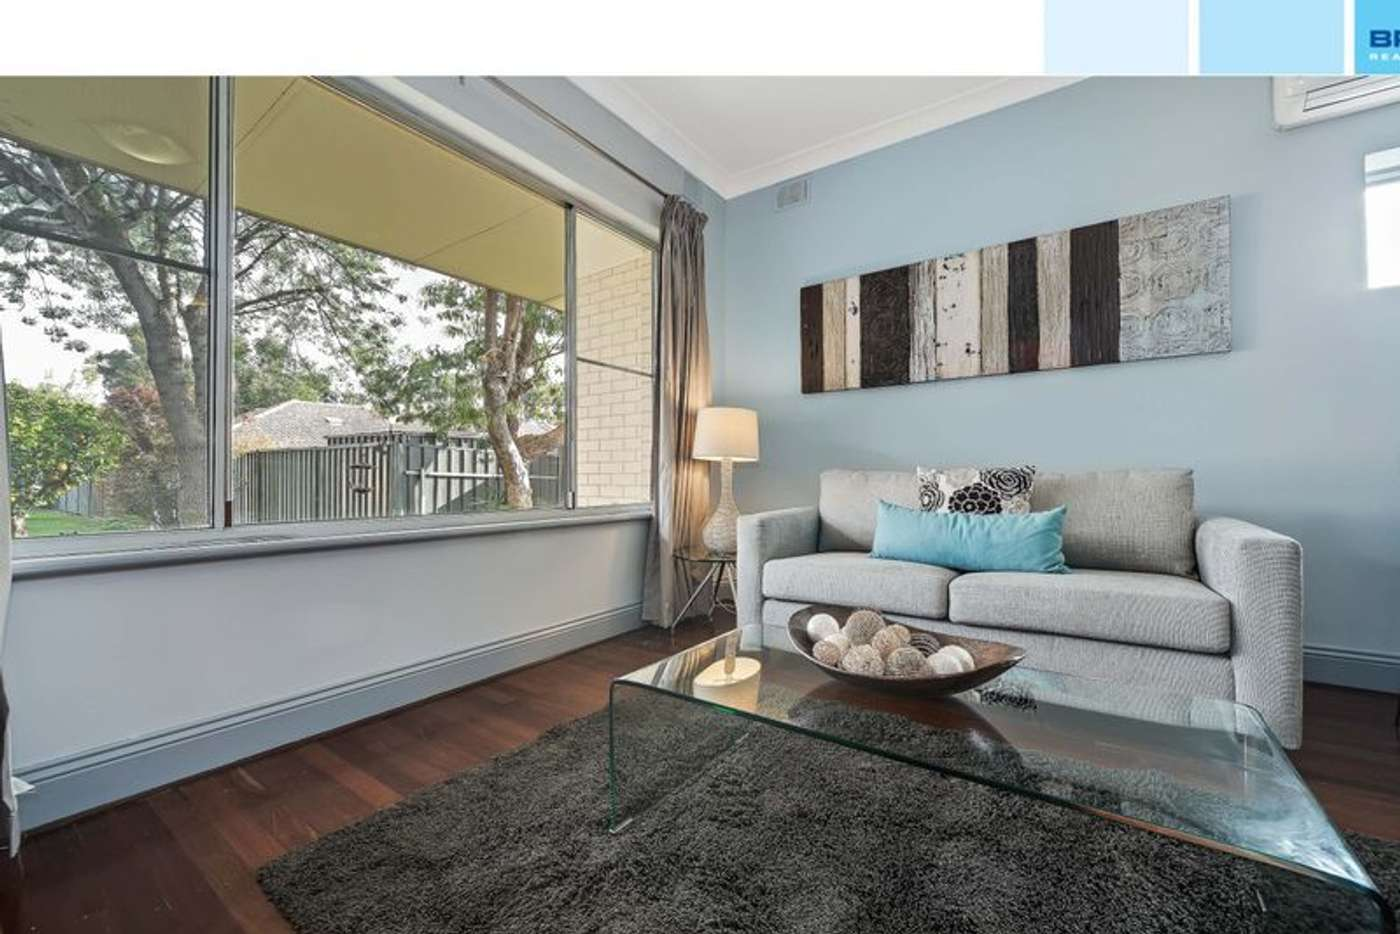 Main view of Homely unit listing, 4/5 Holton Street, Glenside SA 5065